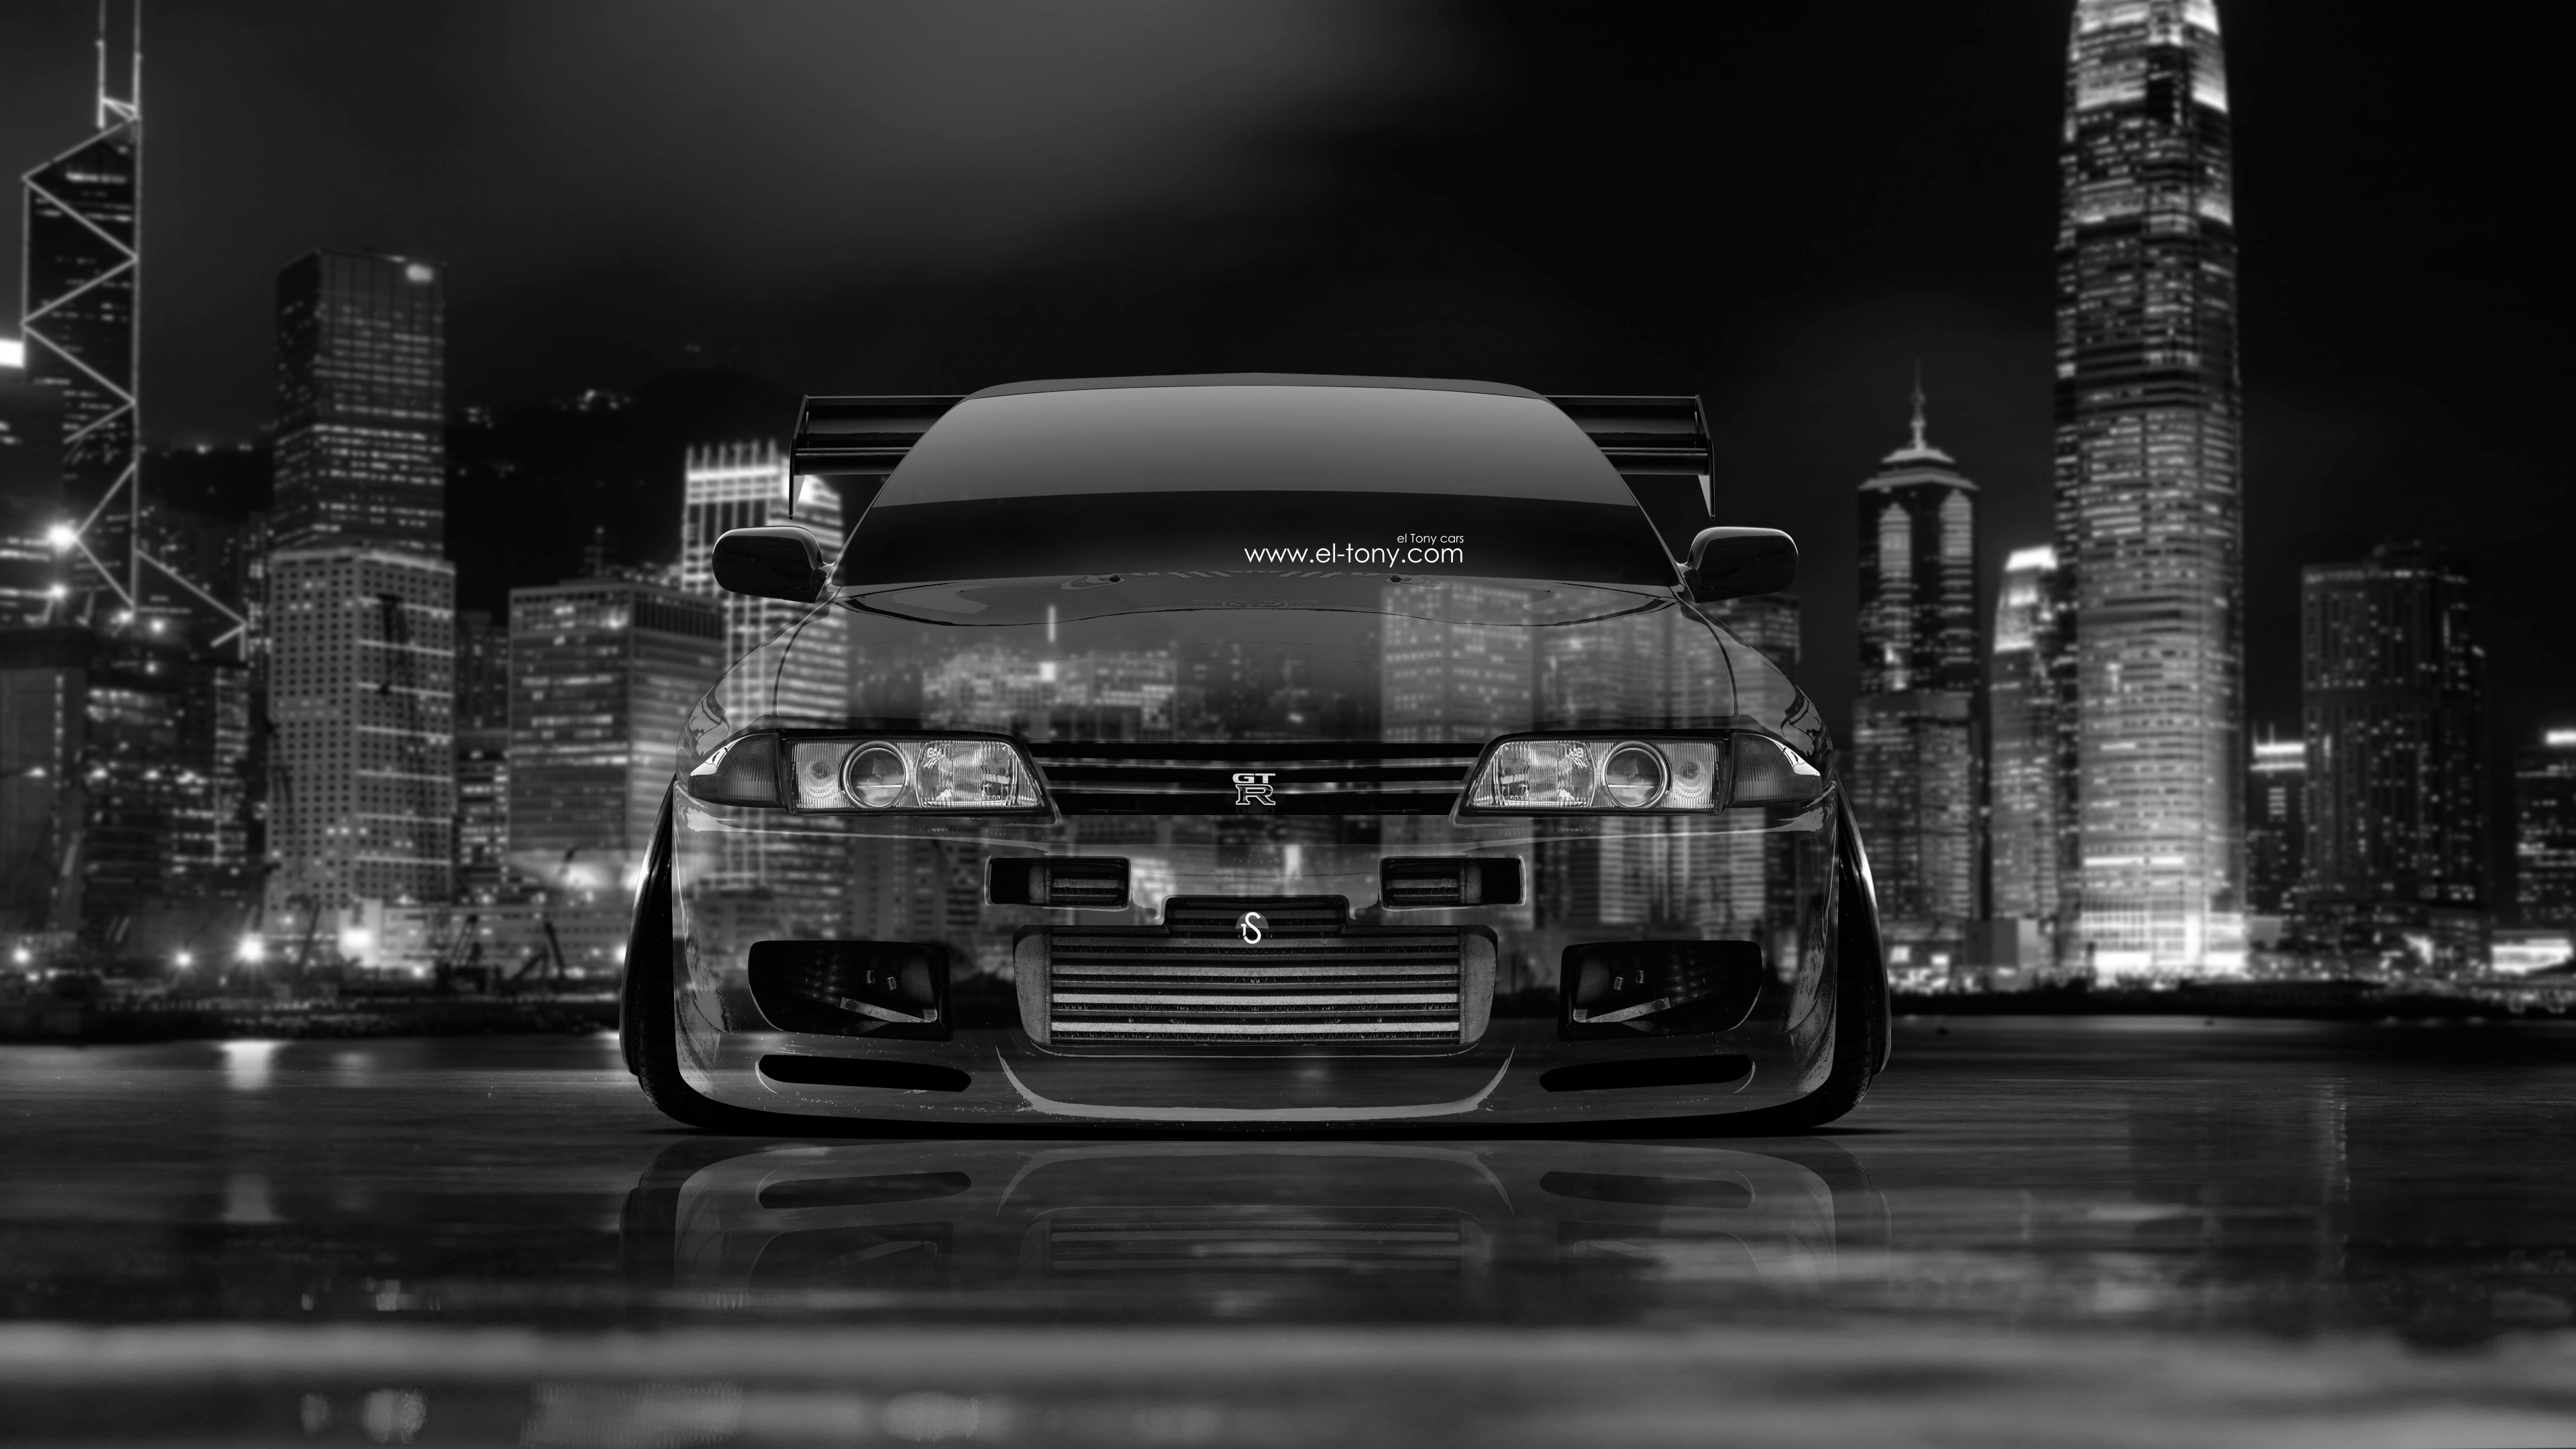 Awesome Nissan Skyline GTR R32 JDM Front Crystal City